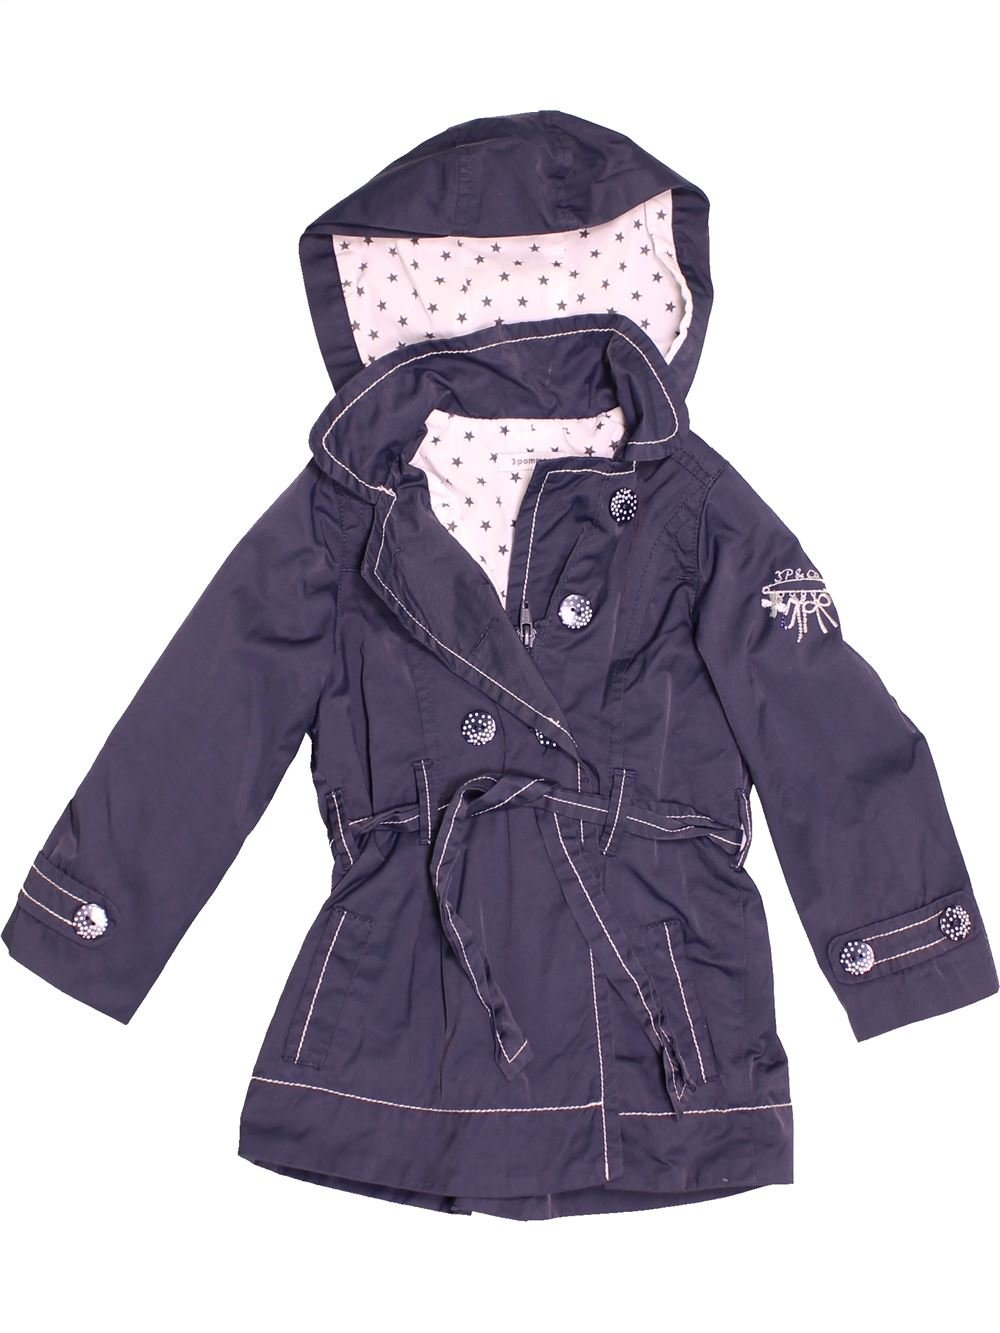 the cheapest great deals lowest discount Parka - Trench Fille 3 POMMES 3 ans pas cher, 4.80 € - #1516903